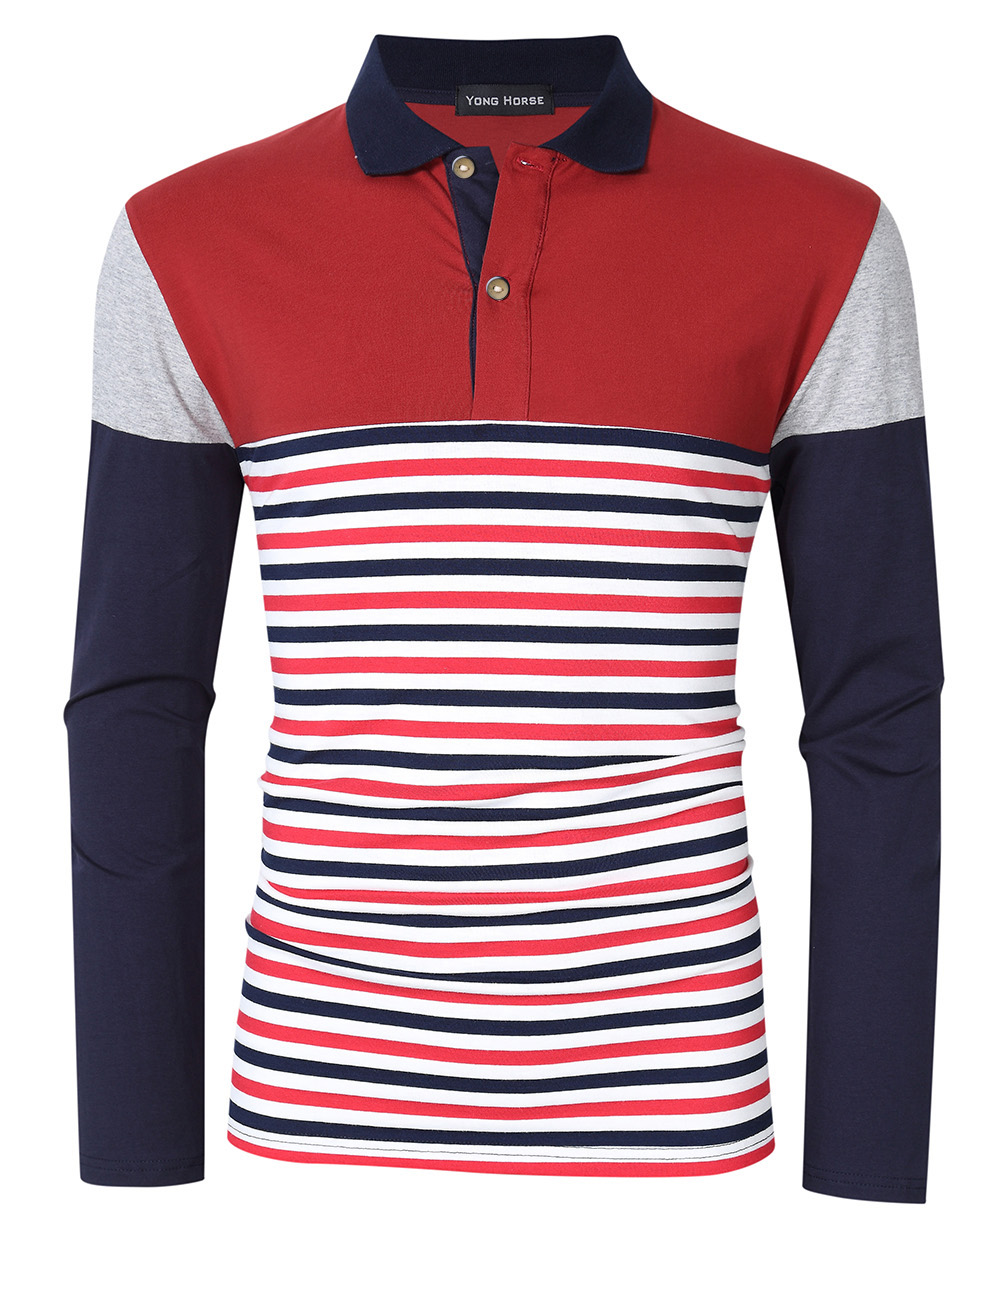 [US Direct] Yong Horse Men's Striped Color Block Slim Fit Long Sleeve Polo Shirt Red_2XL